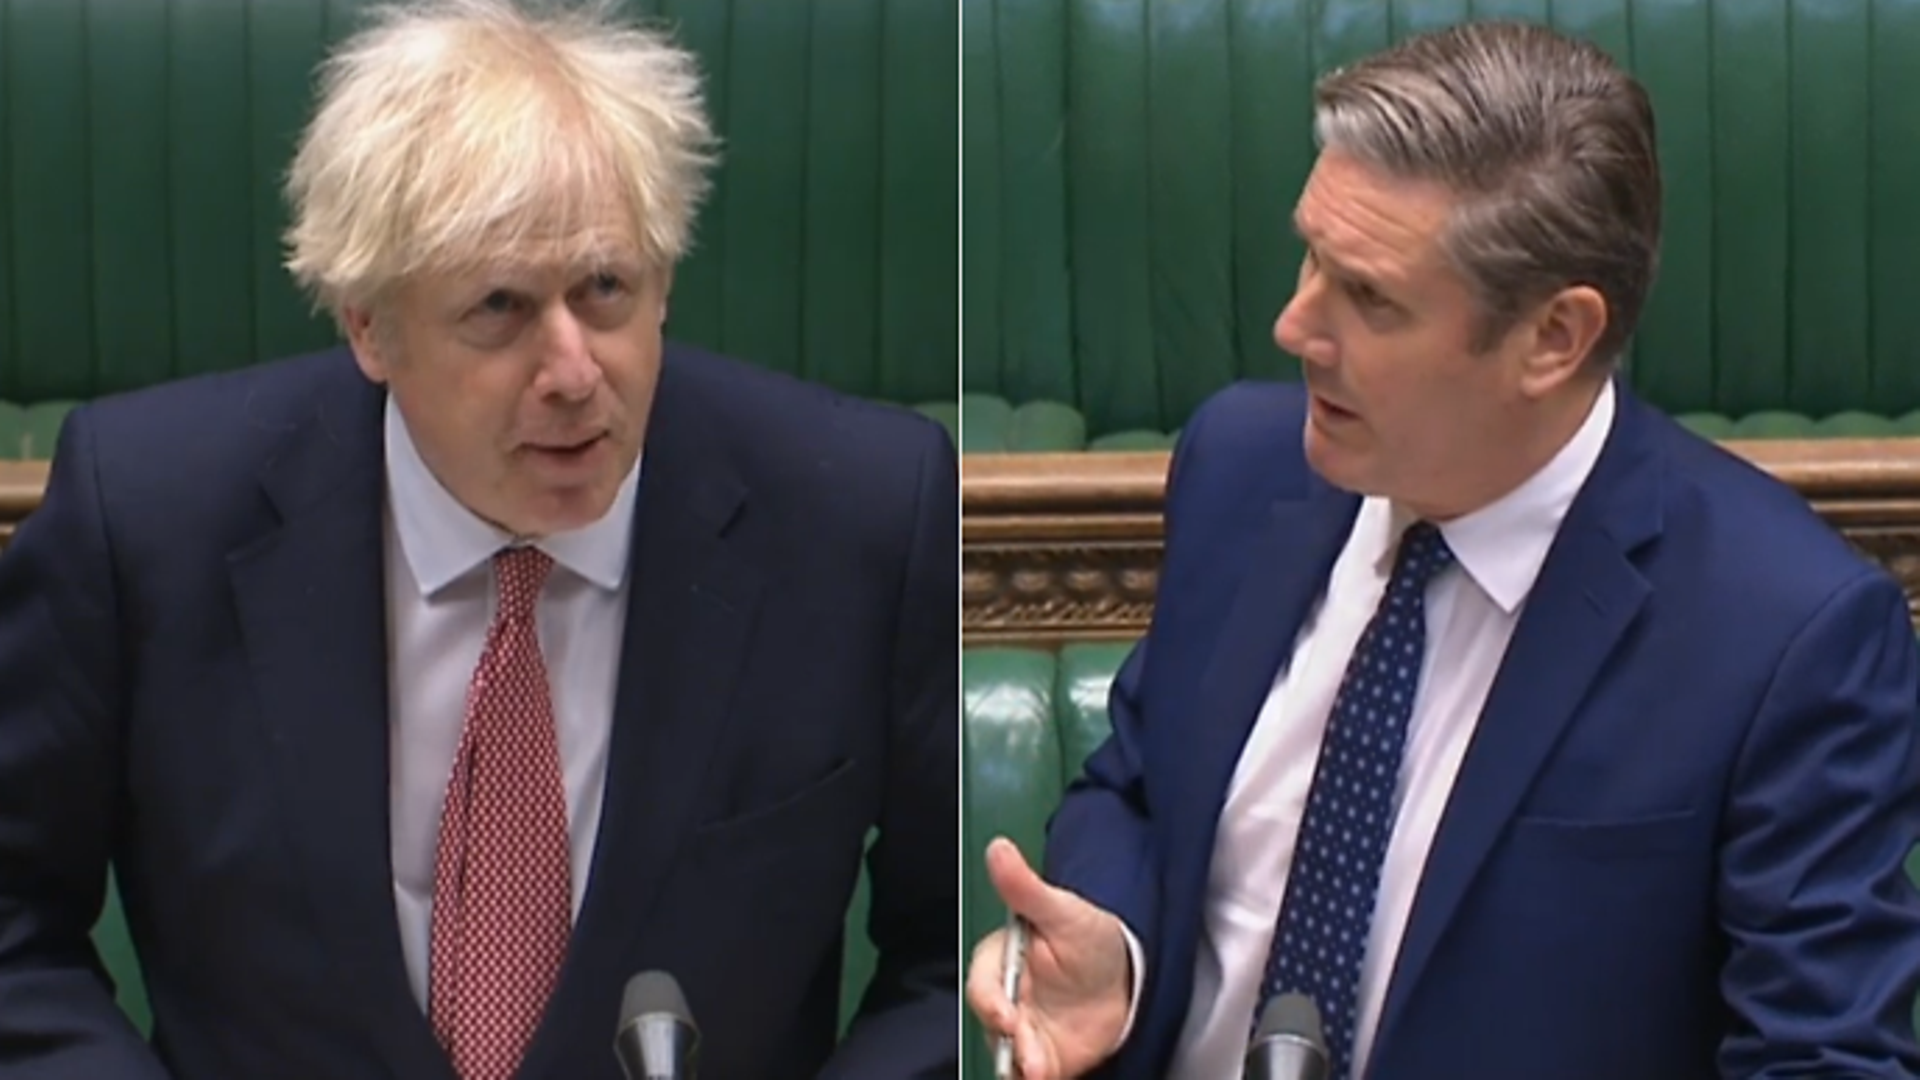 Boris Johnson (L) and Keir Starmer in the House of Commons during PMQs - Credit: Parliamentlive.tv